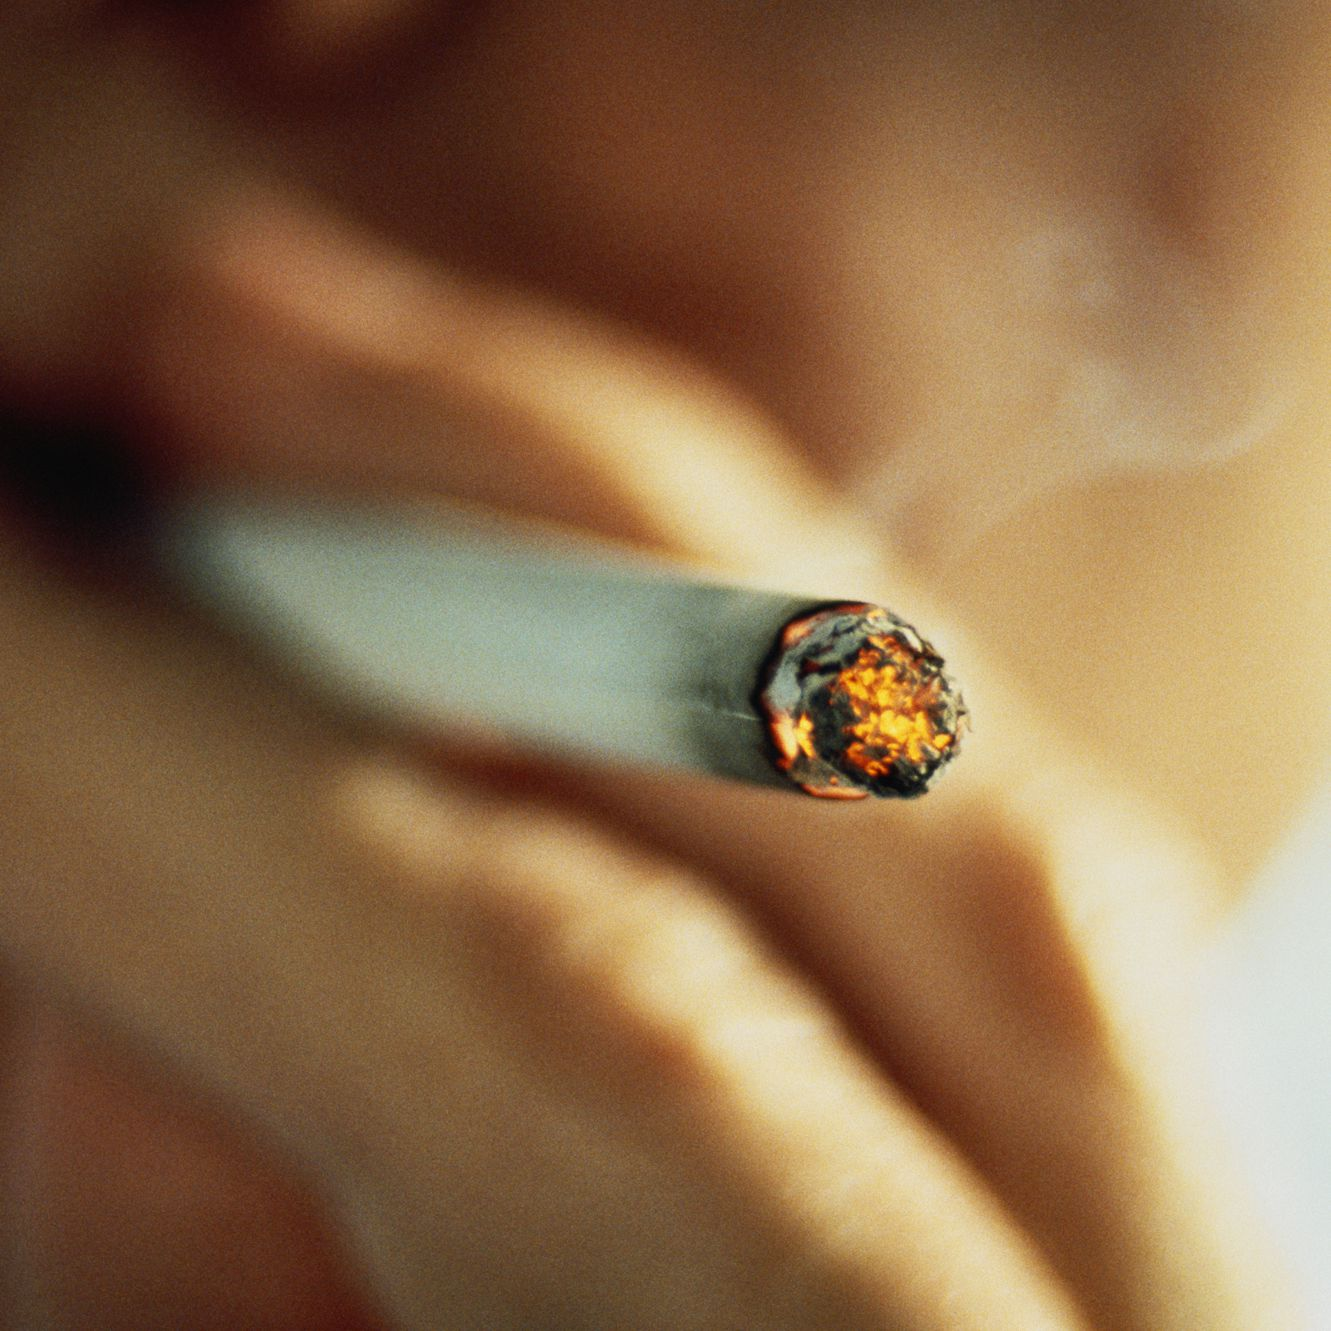 Are Light Cigarettes Safer for You?